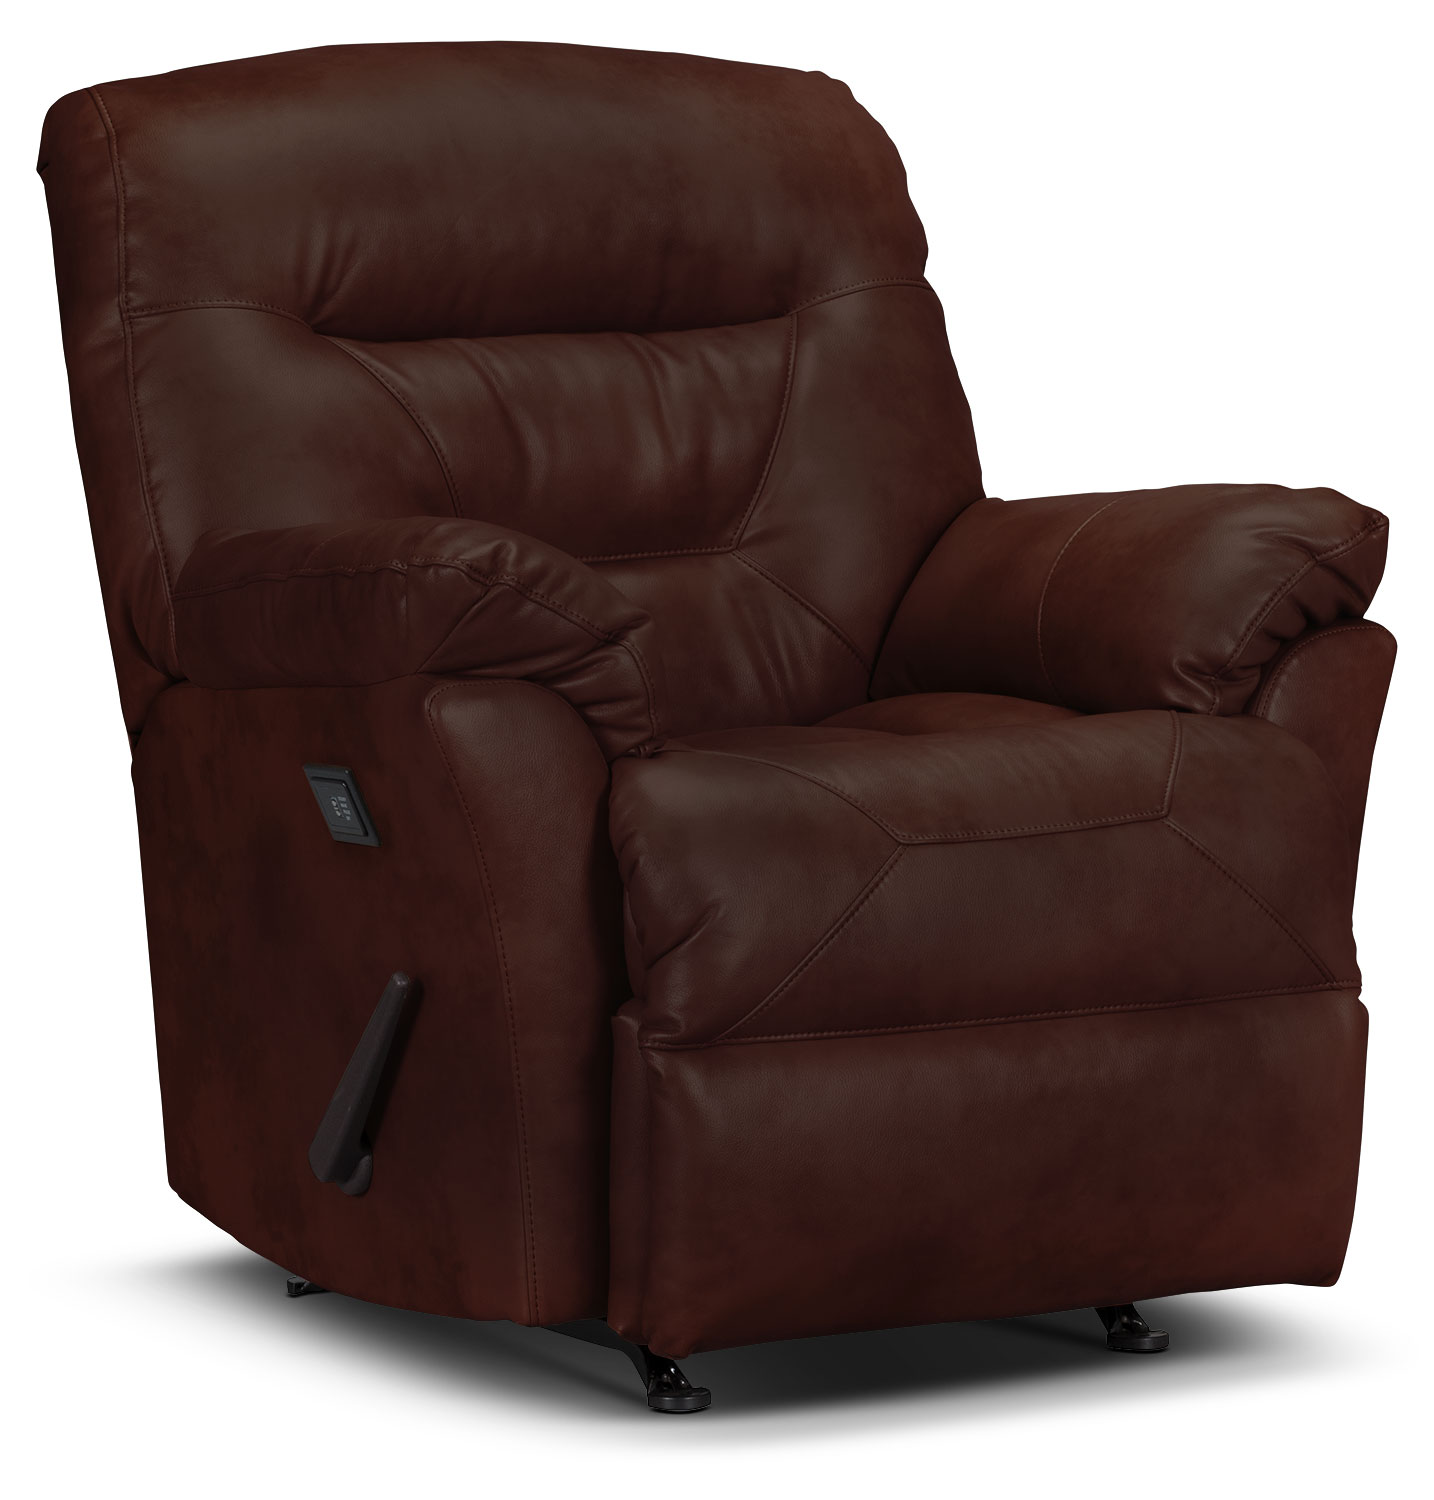 Designed2B Recliner 4579 Genuine Leather Massage Recliner - Walnut